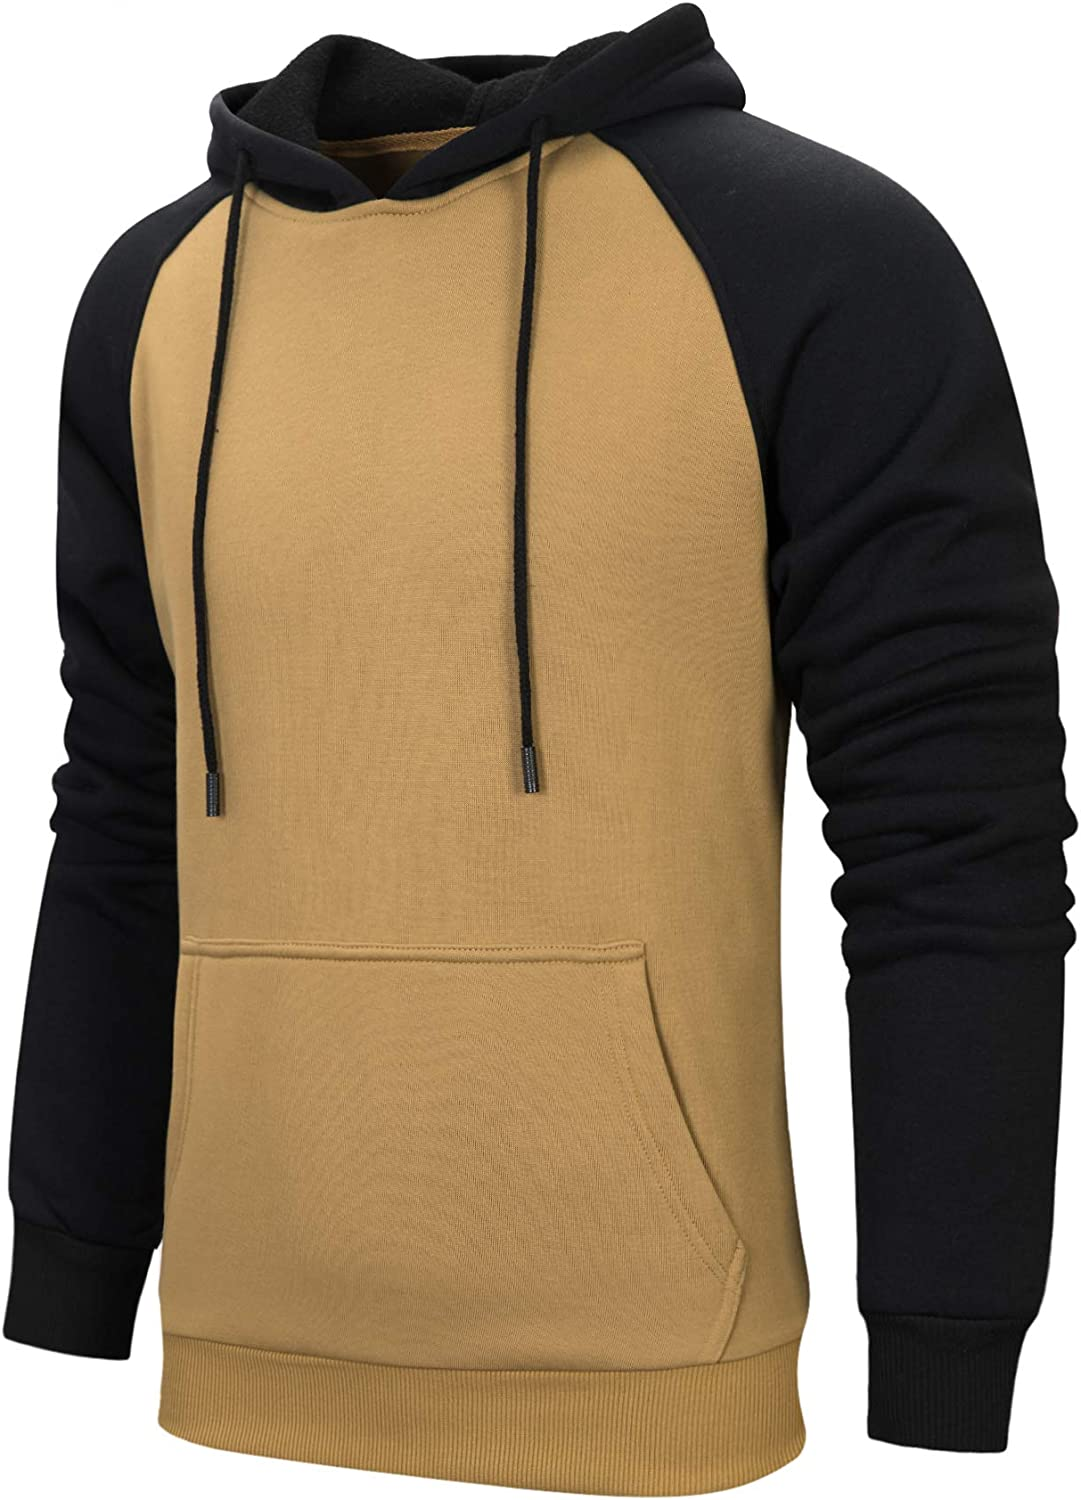 LBL Mens Contrast Color Hoodies Comfort Casual Pullover Sports Outwear Sweater Khaki S